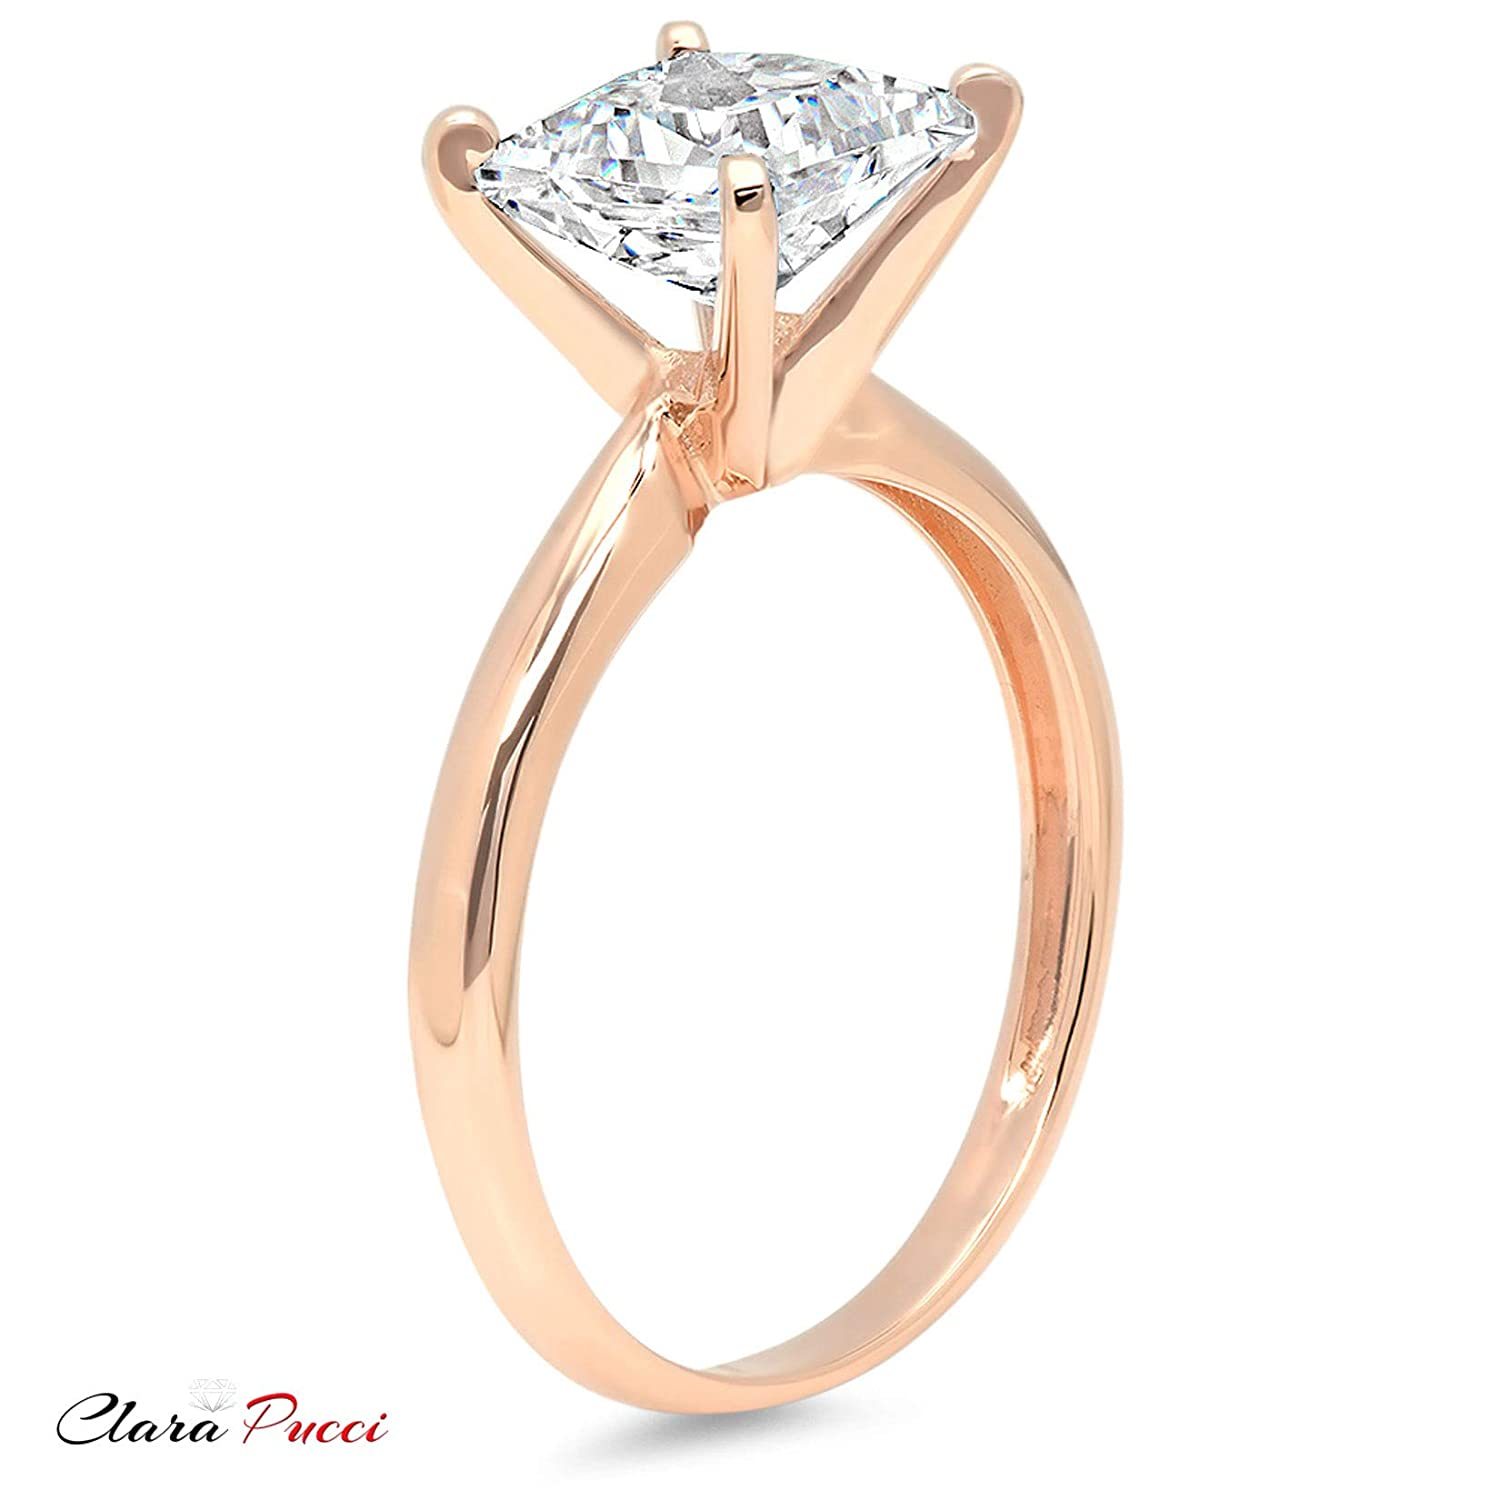 14k Rose Gold 0.47cttw Classic Princess Solitaire Moissanite Engagement Promise Ring Statement Anniversary Bridal Wedding by Clara Pucci